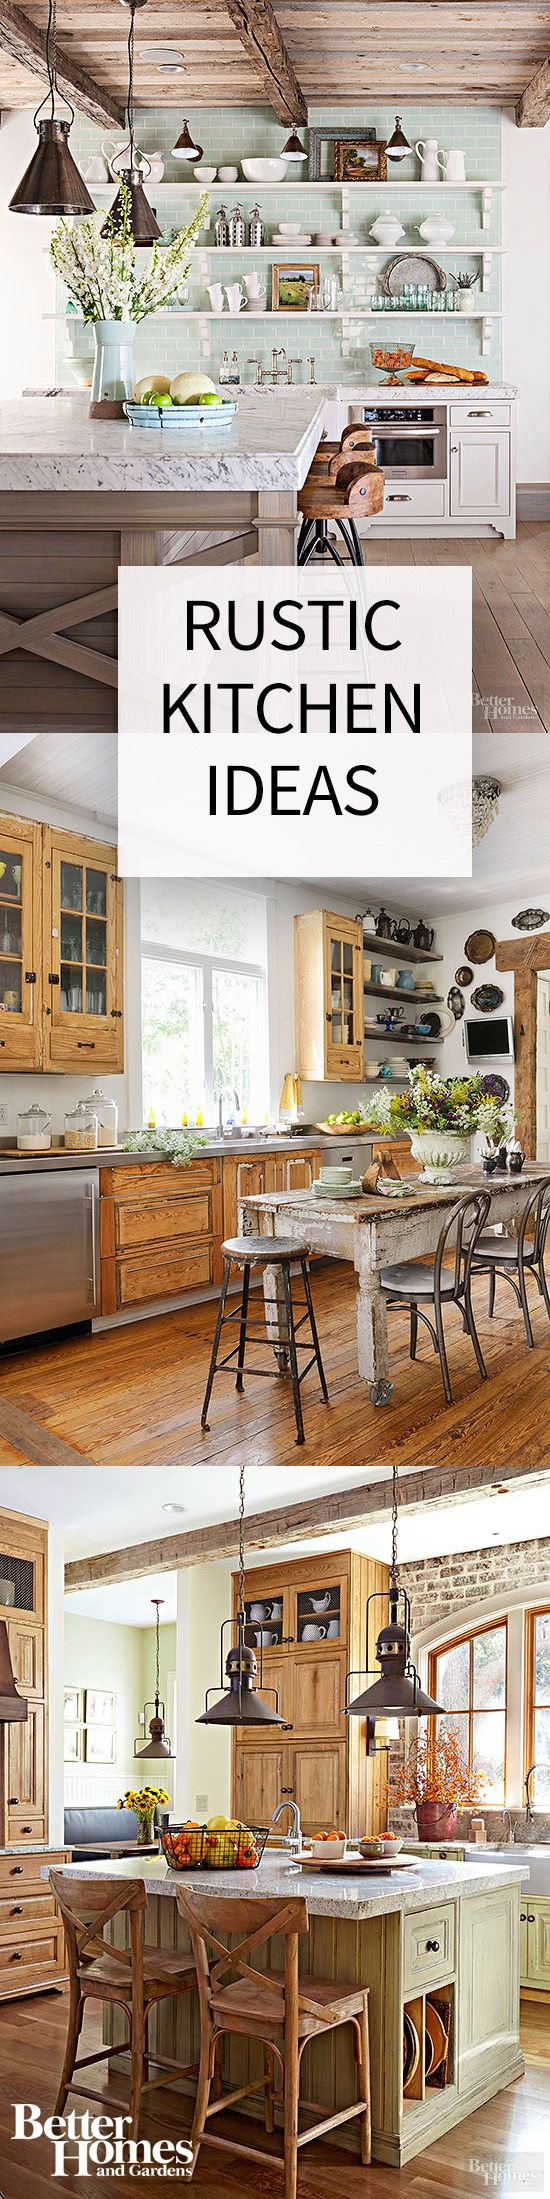 Rustic Kitchen 17 Best Ideas About Rustic Kitchens On Pinterest Rustic Kitchen